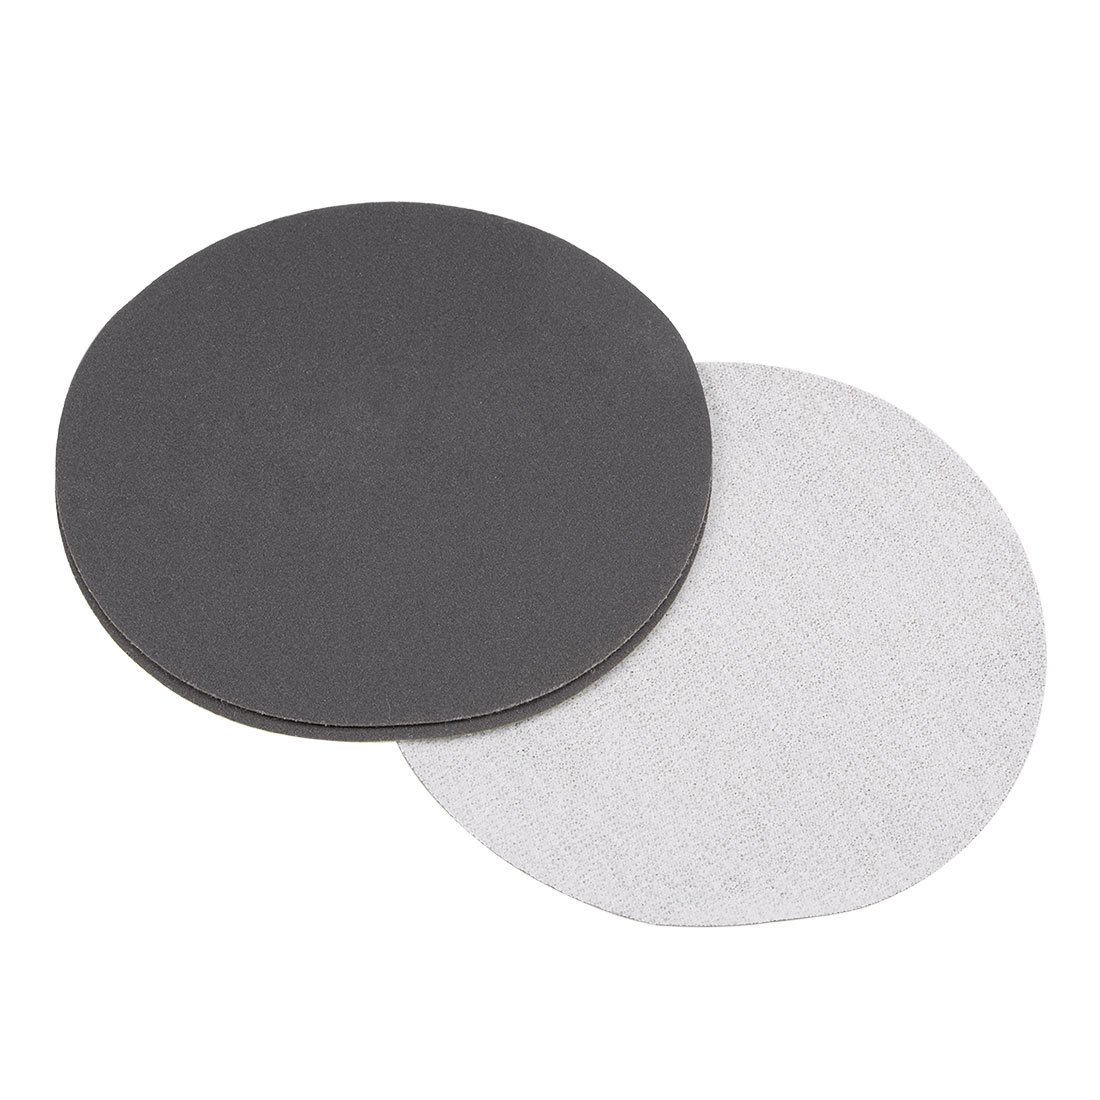 5 inch Wet Dry Discs 400 Grit Hook and Loop Sanding Disc Silicon Carbide 3pcs